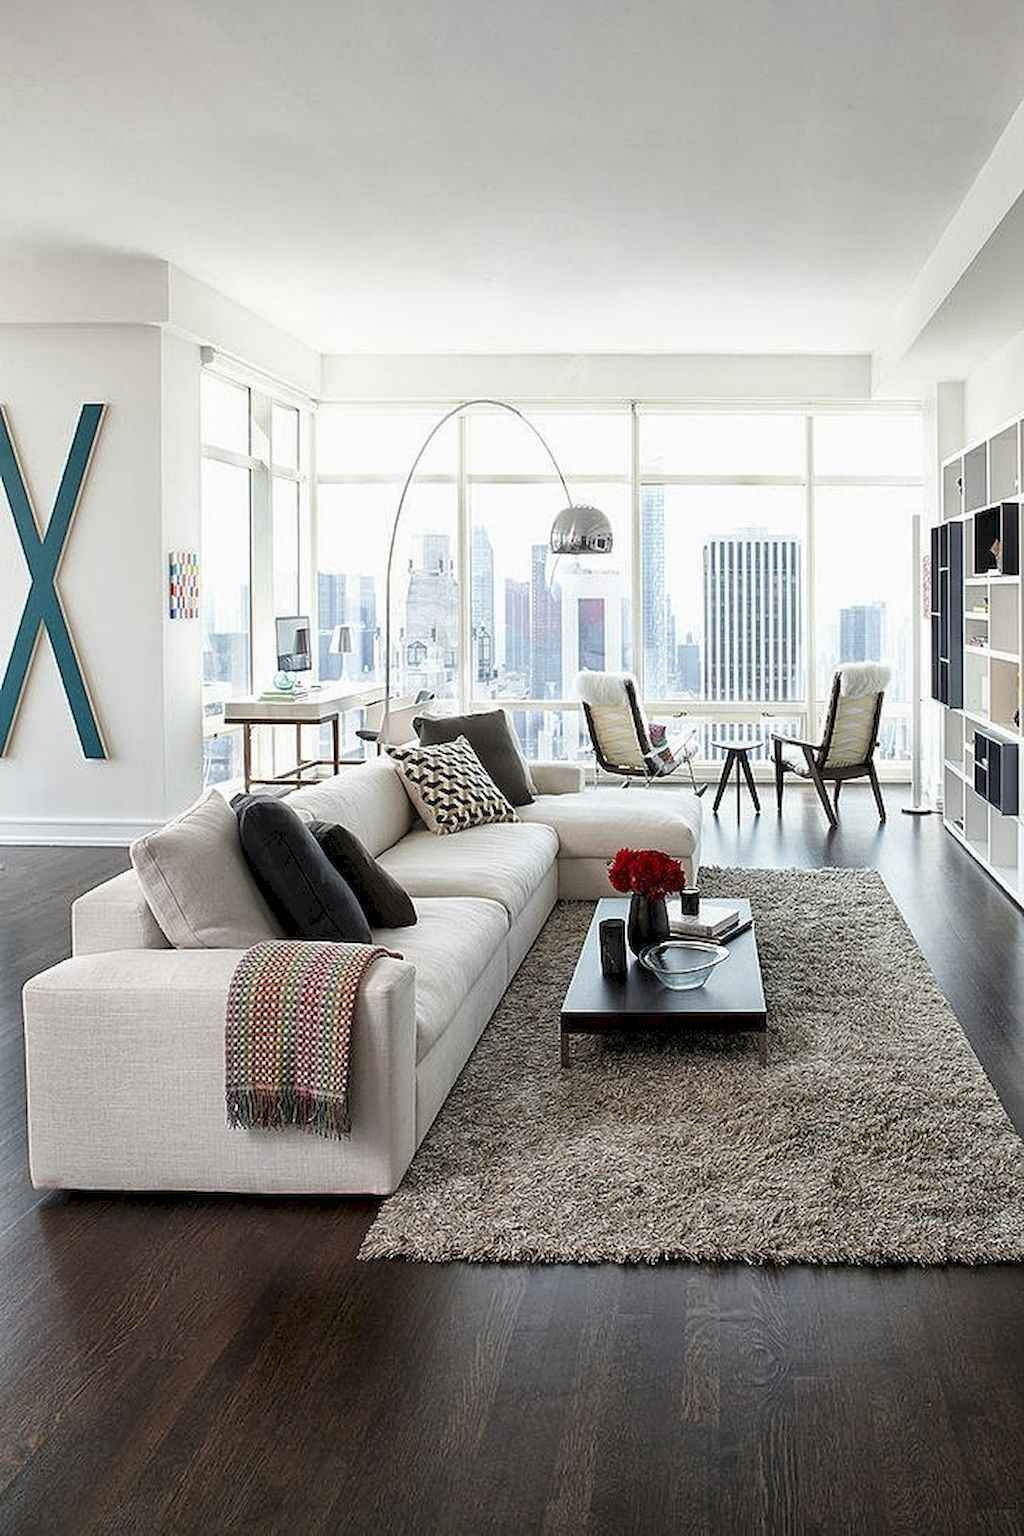 Awesome apartment living room decorating ideas (14)